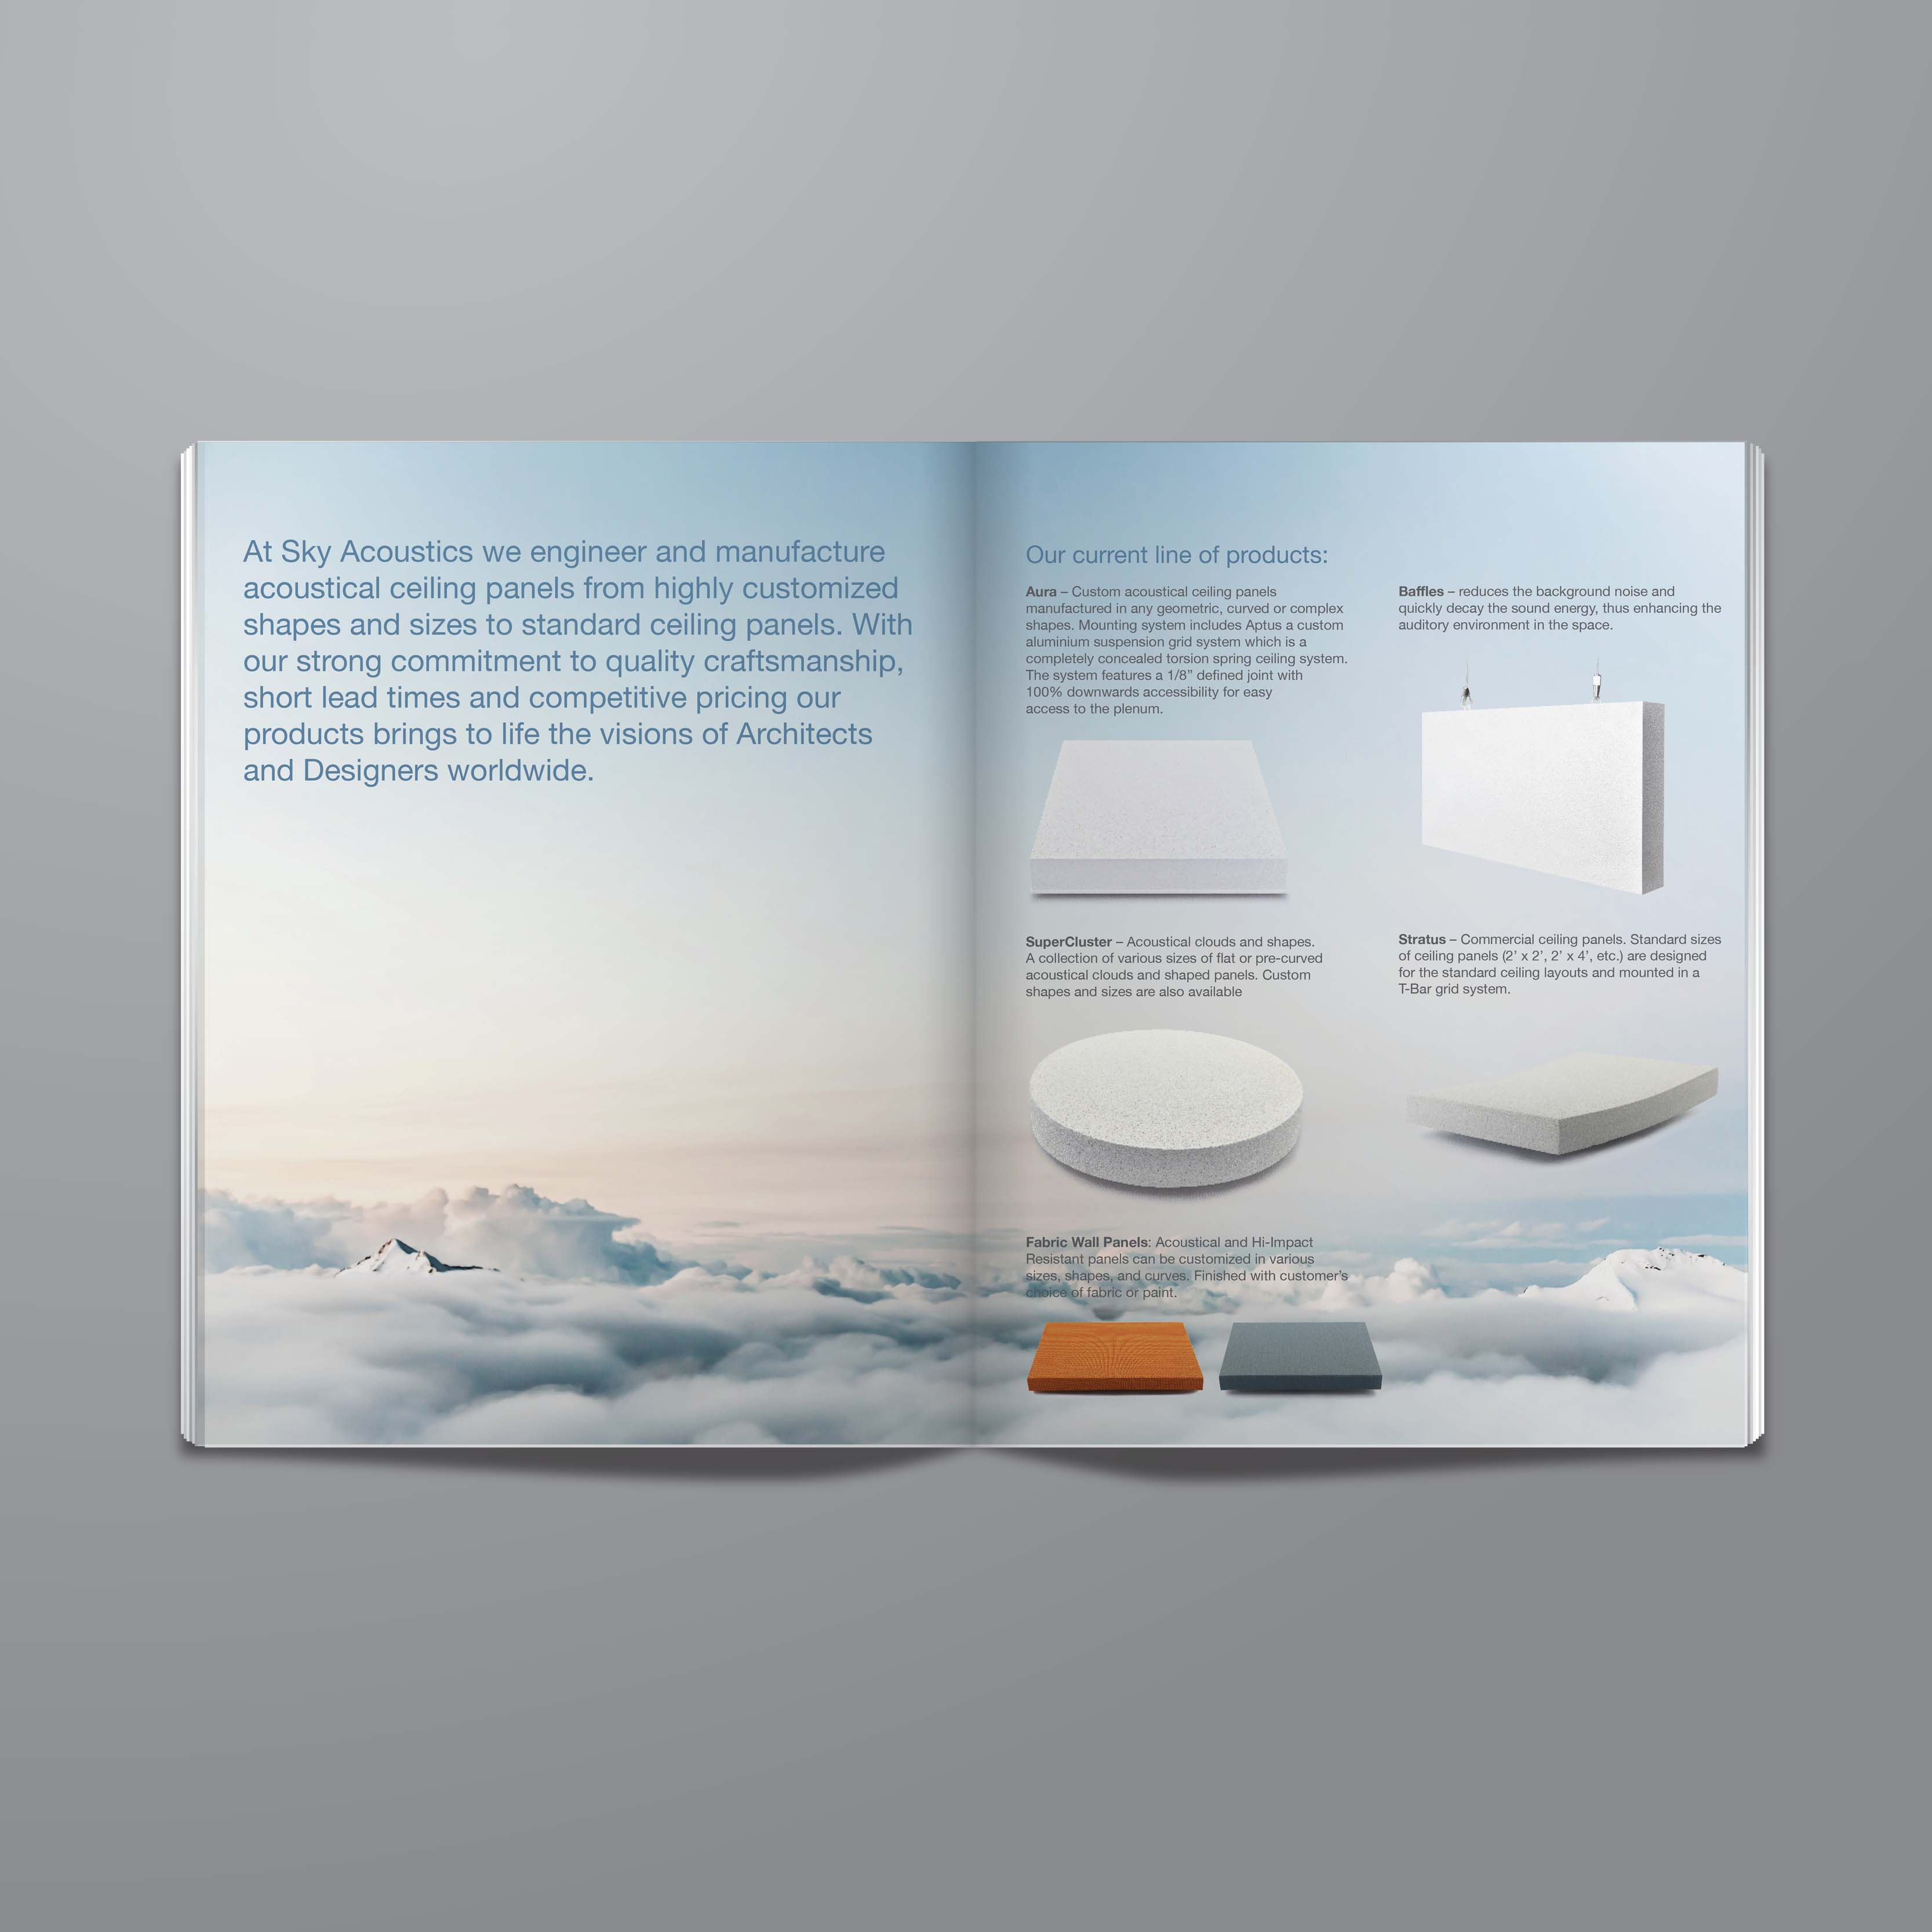 folded-paper-blank-white-booklet-magazine-report-book